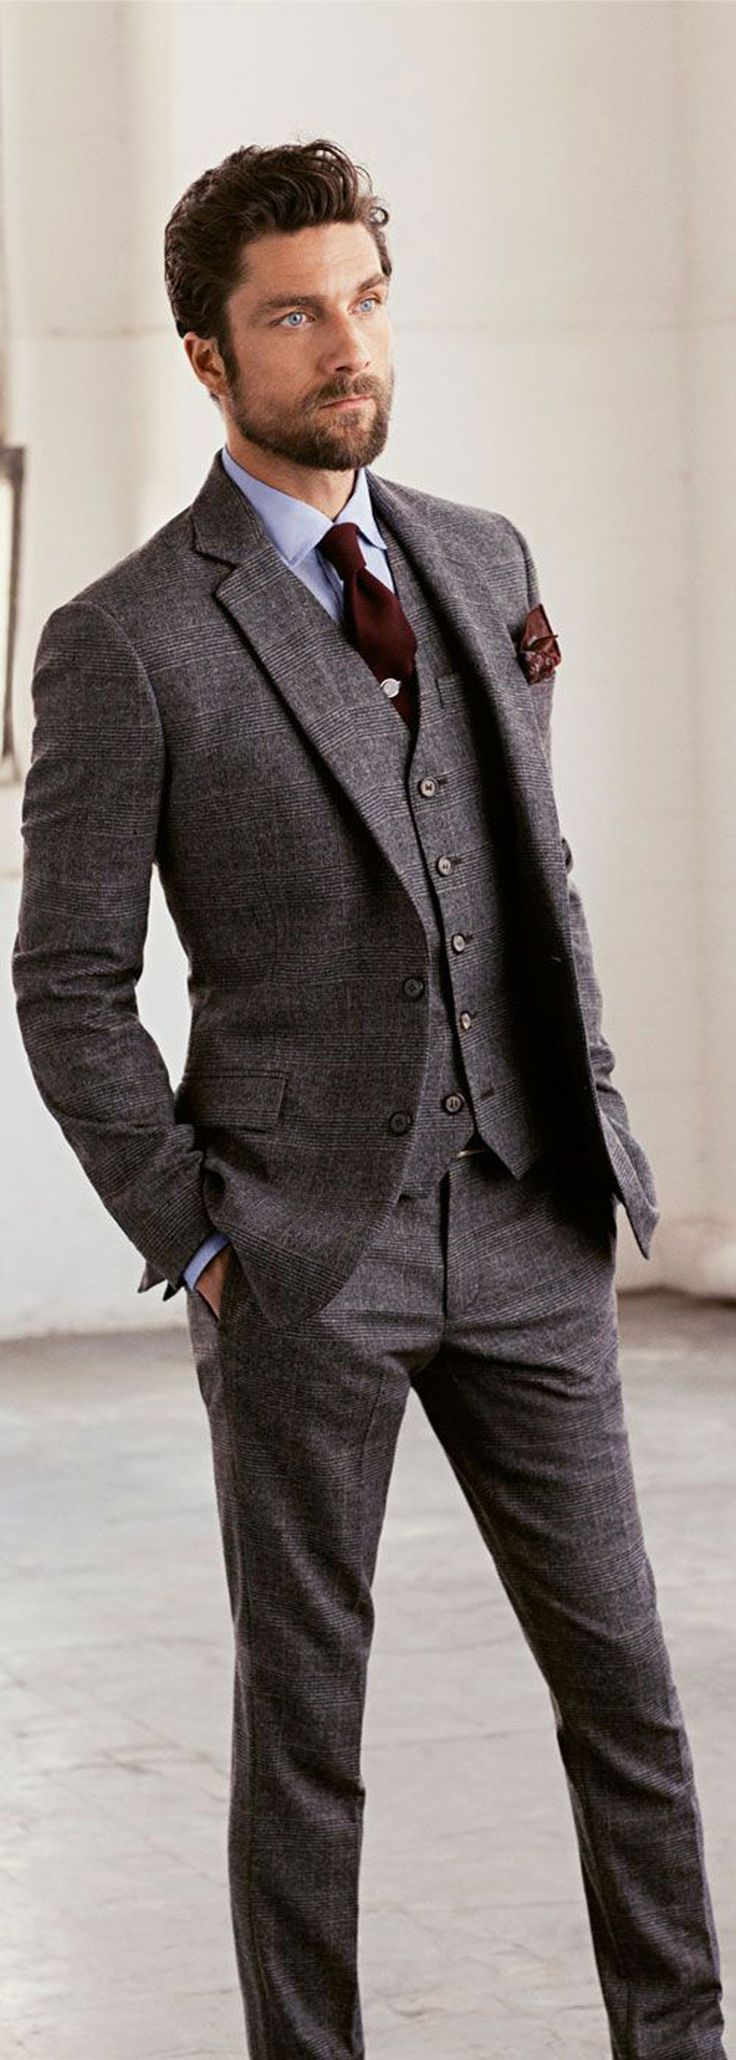 groom suits wedding suits Wedding Ideas by Colour Grey Wedding Suits Alternative Fabric CHWV